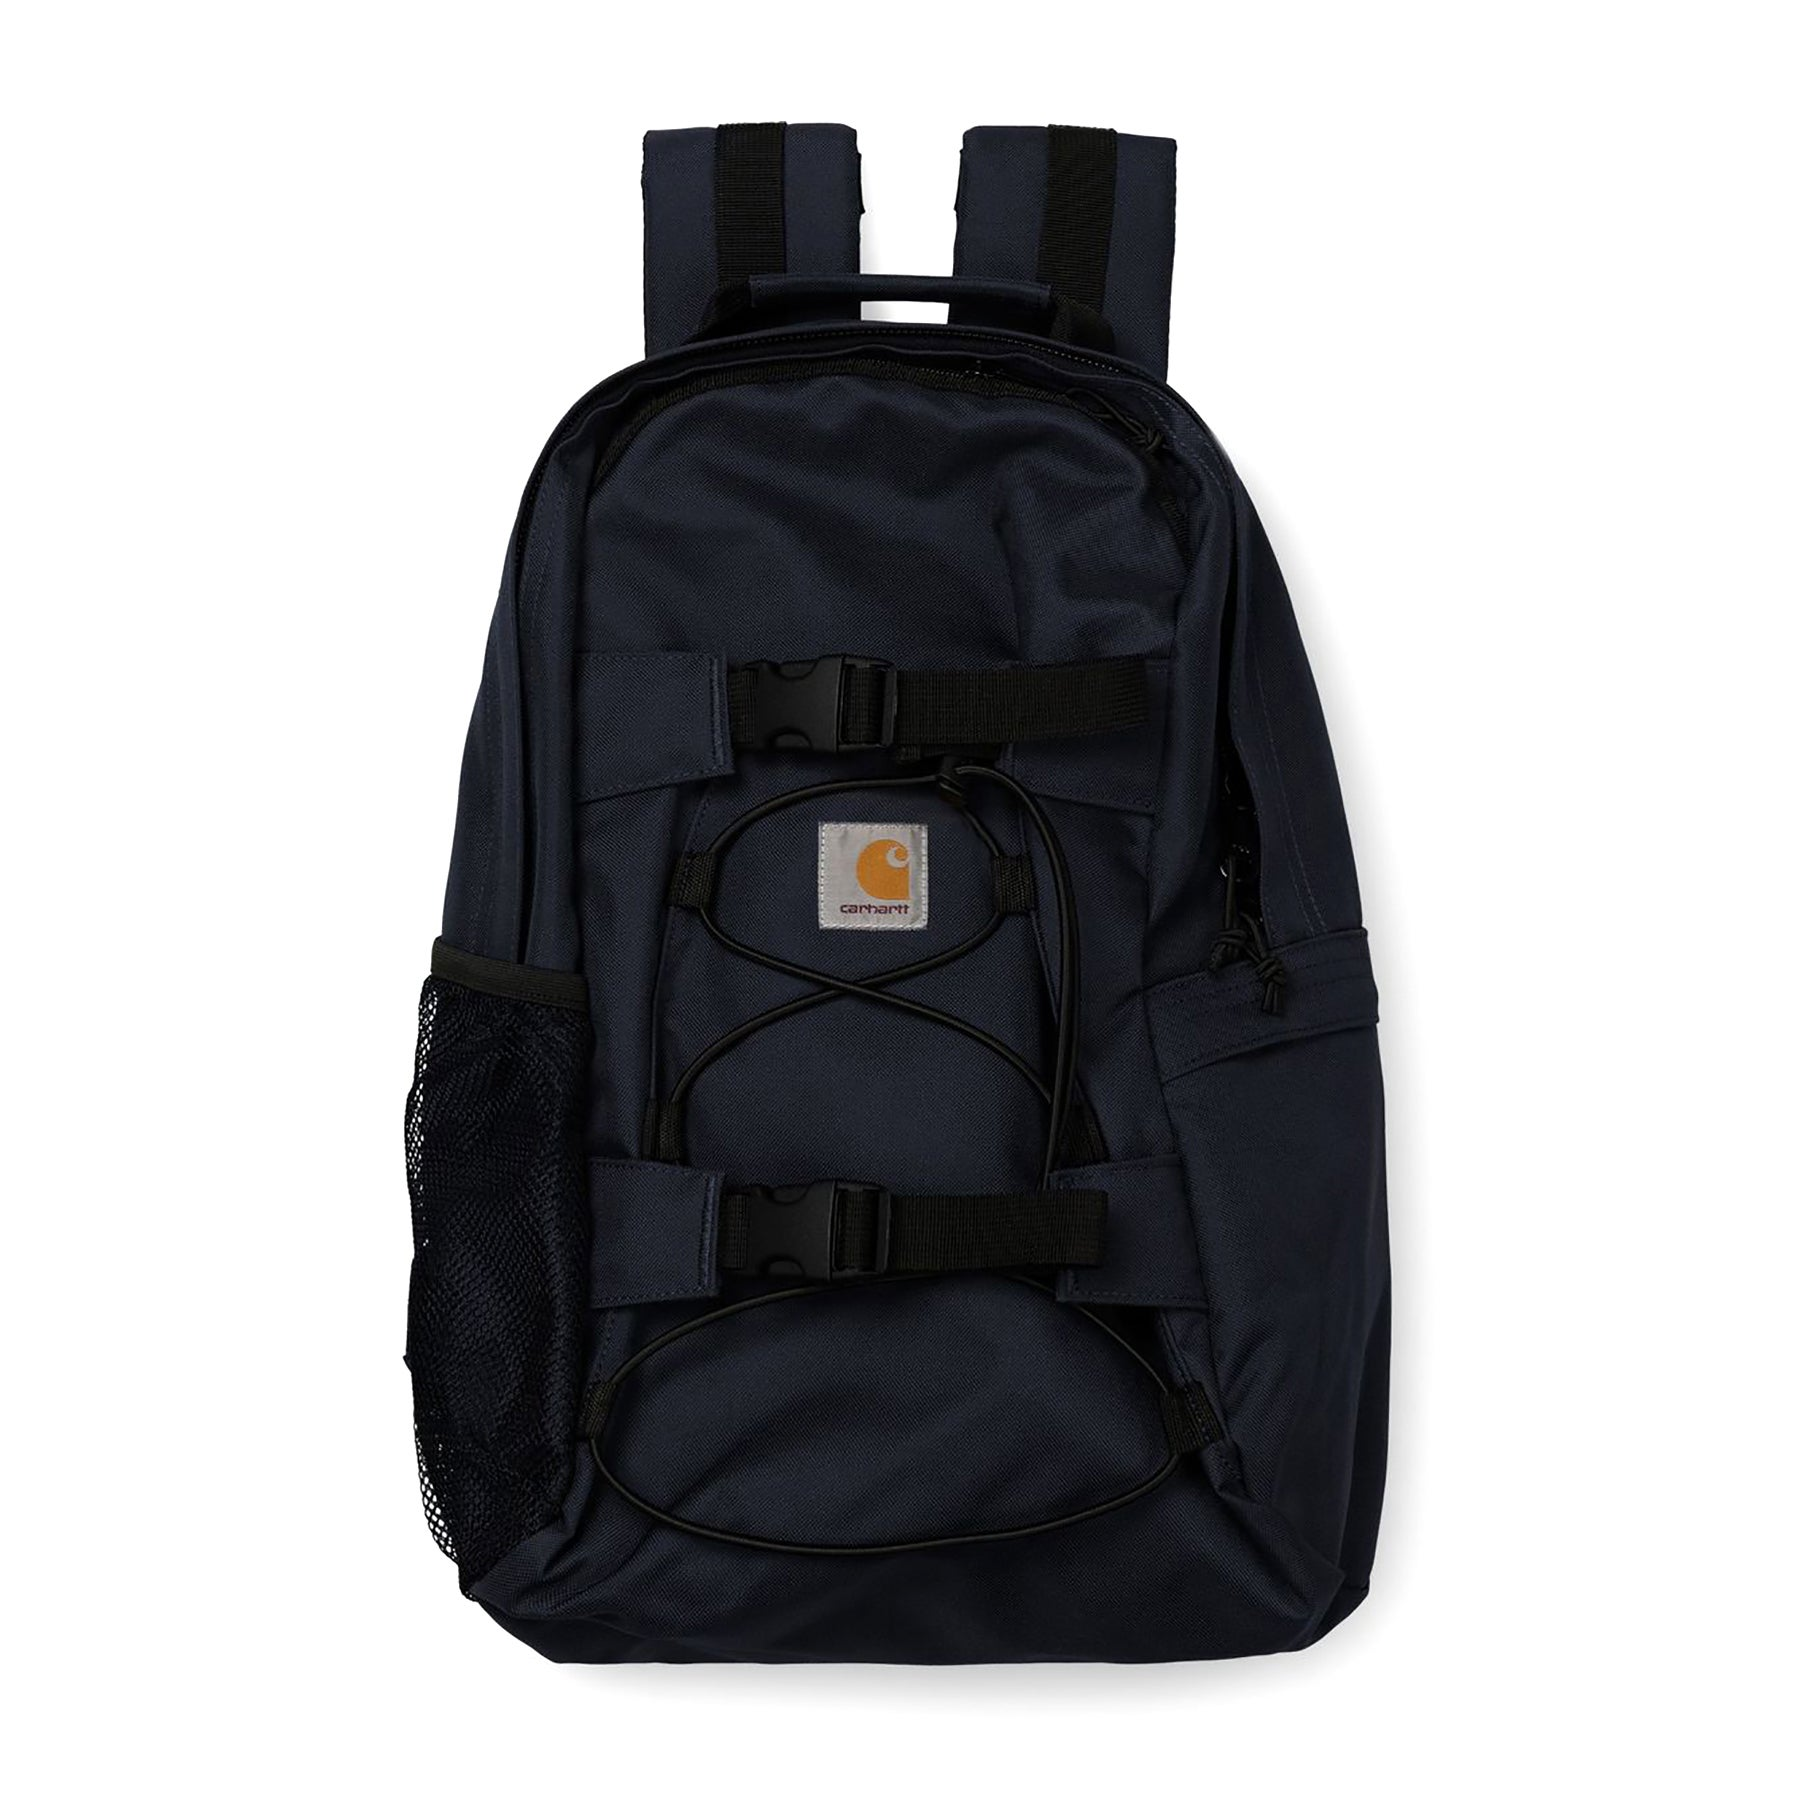 Carhartt Kickflip Backpack - Dark Navy